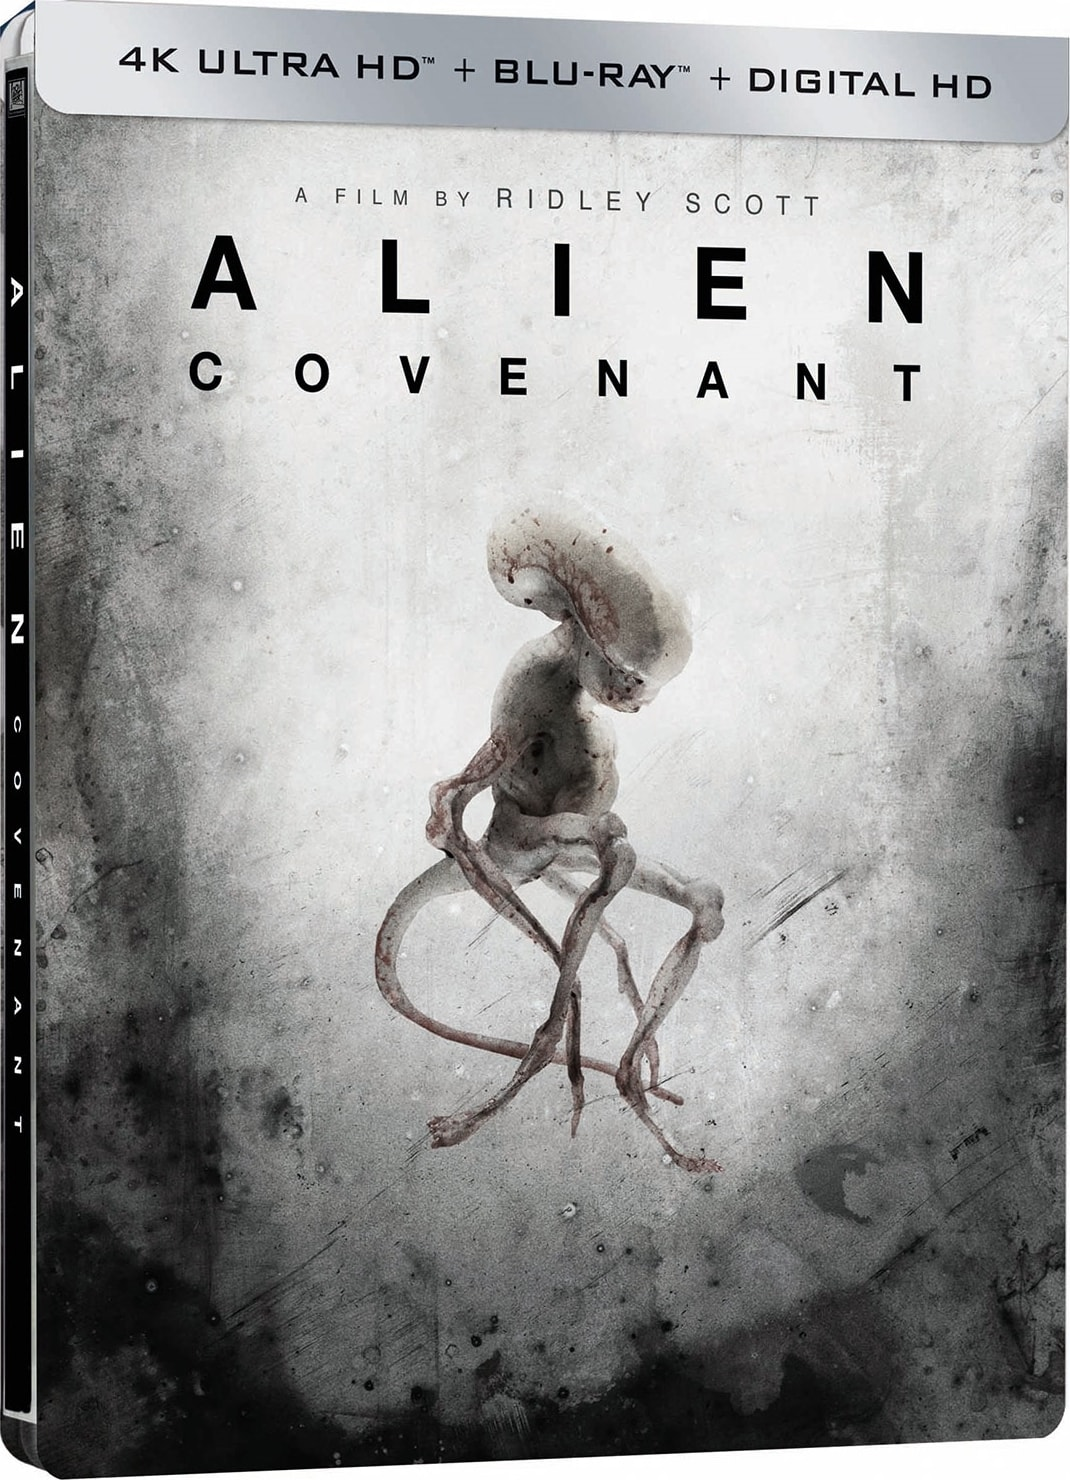 Alien: Covenant (2017) BluRay REMUX 4k Ultra HD 2160